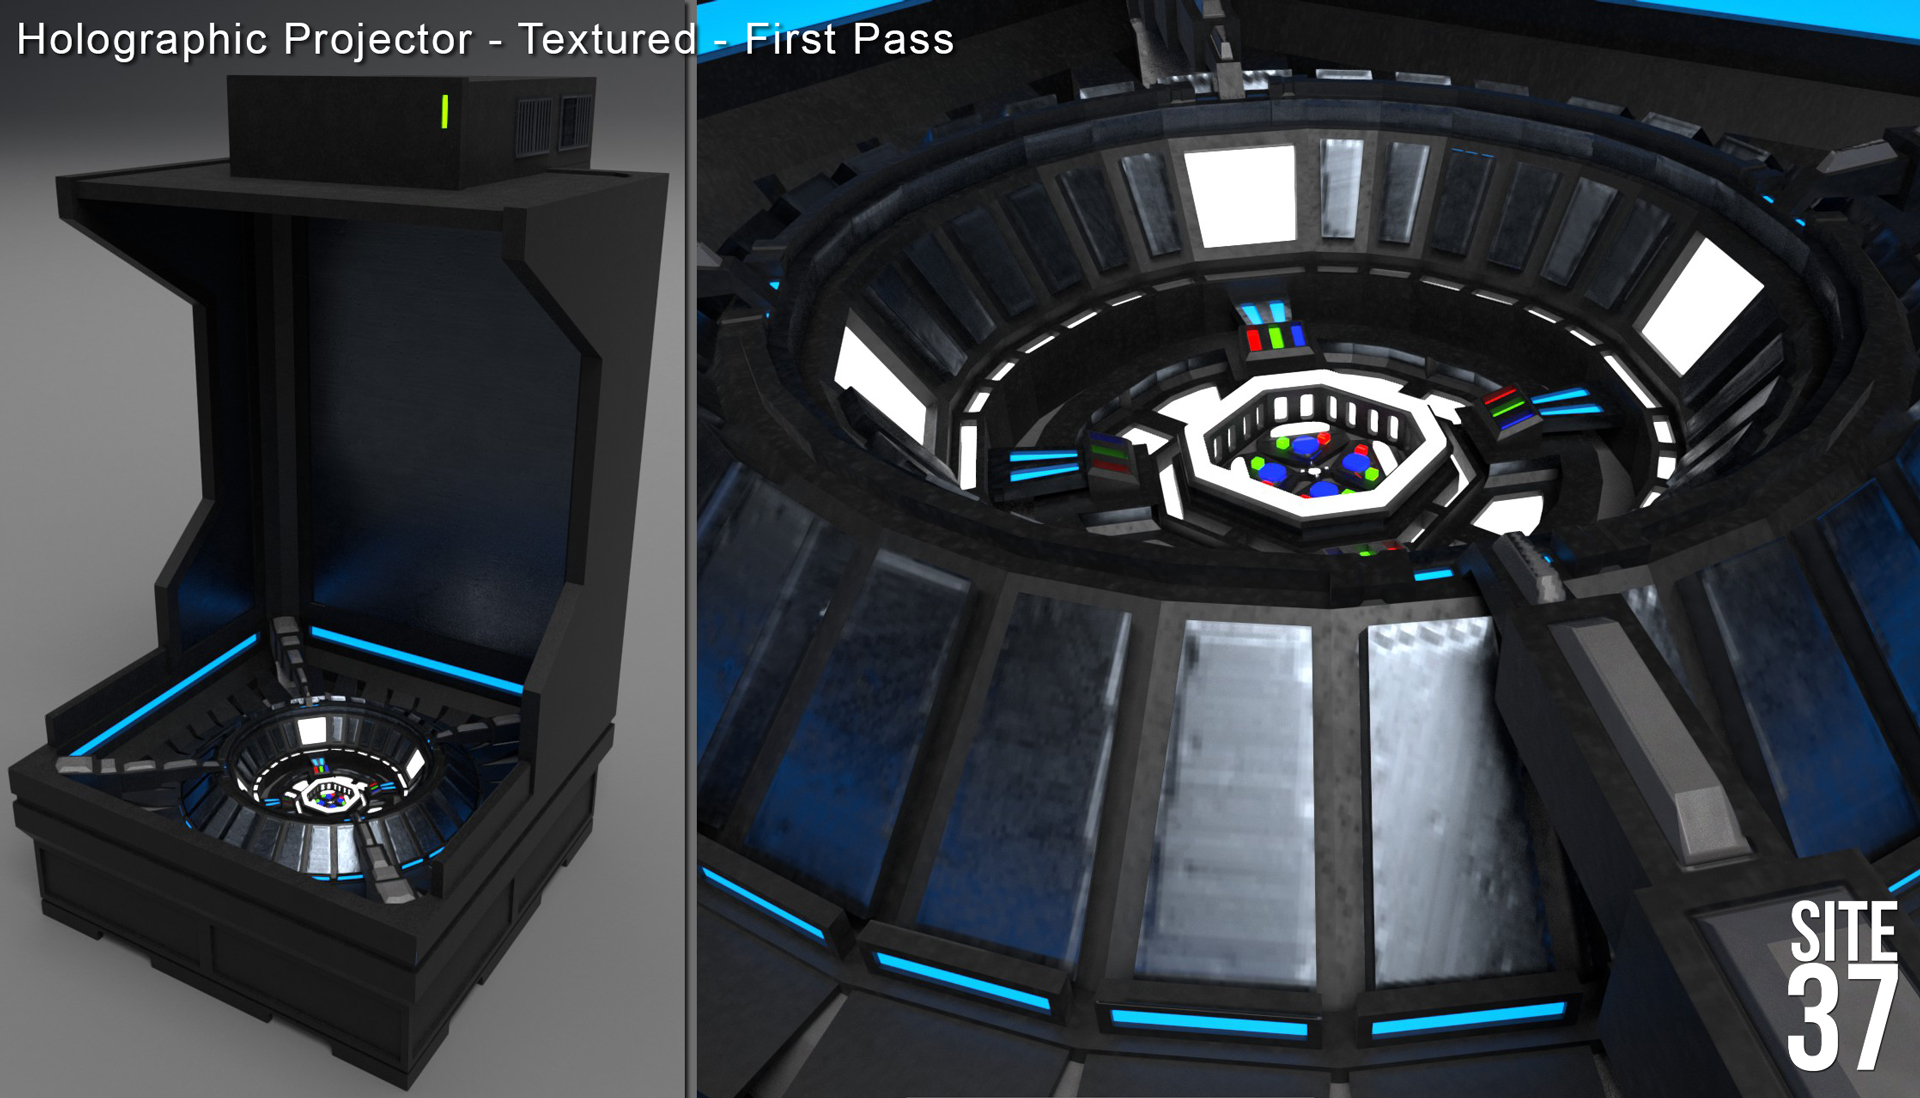 Holographic Projector - Base Textures